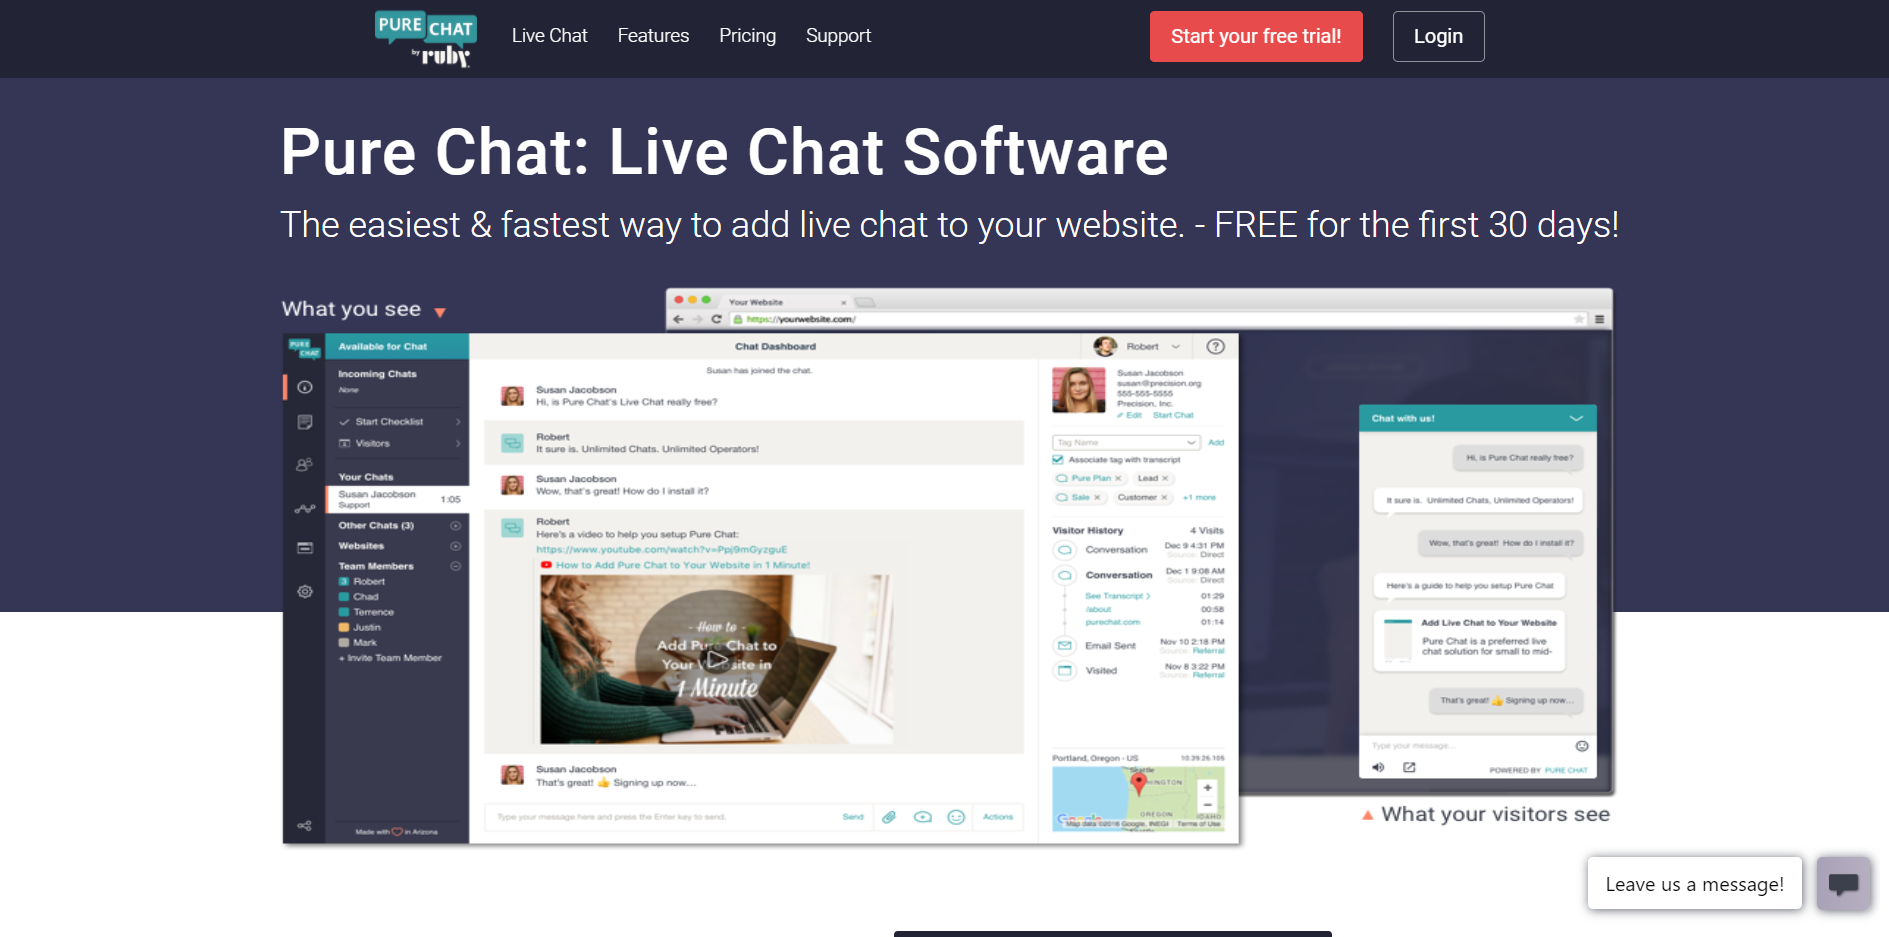 Pure chat: Live chat software